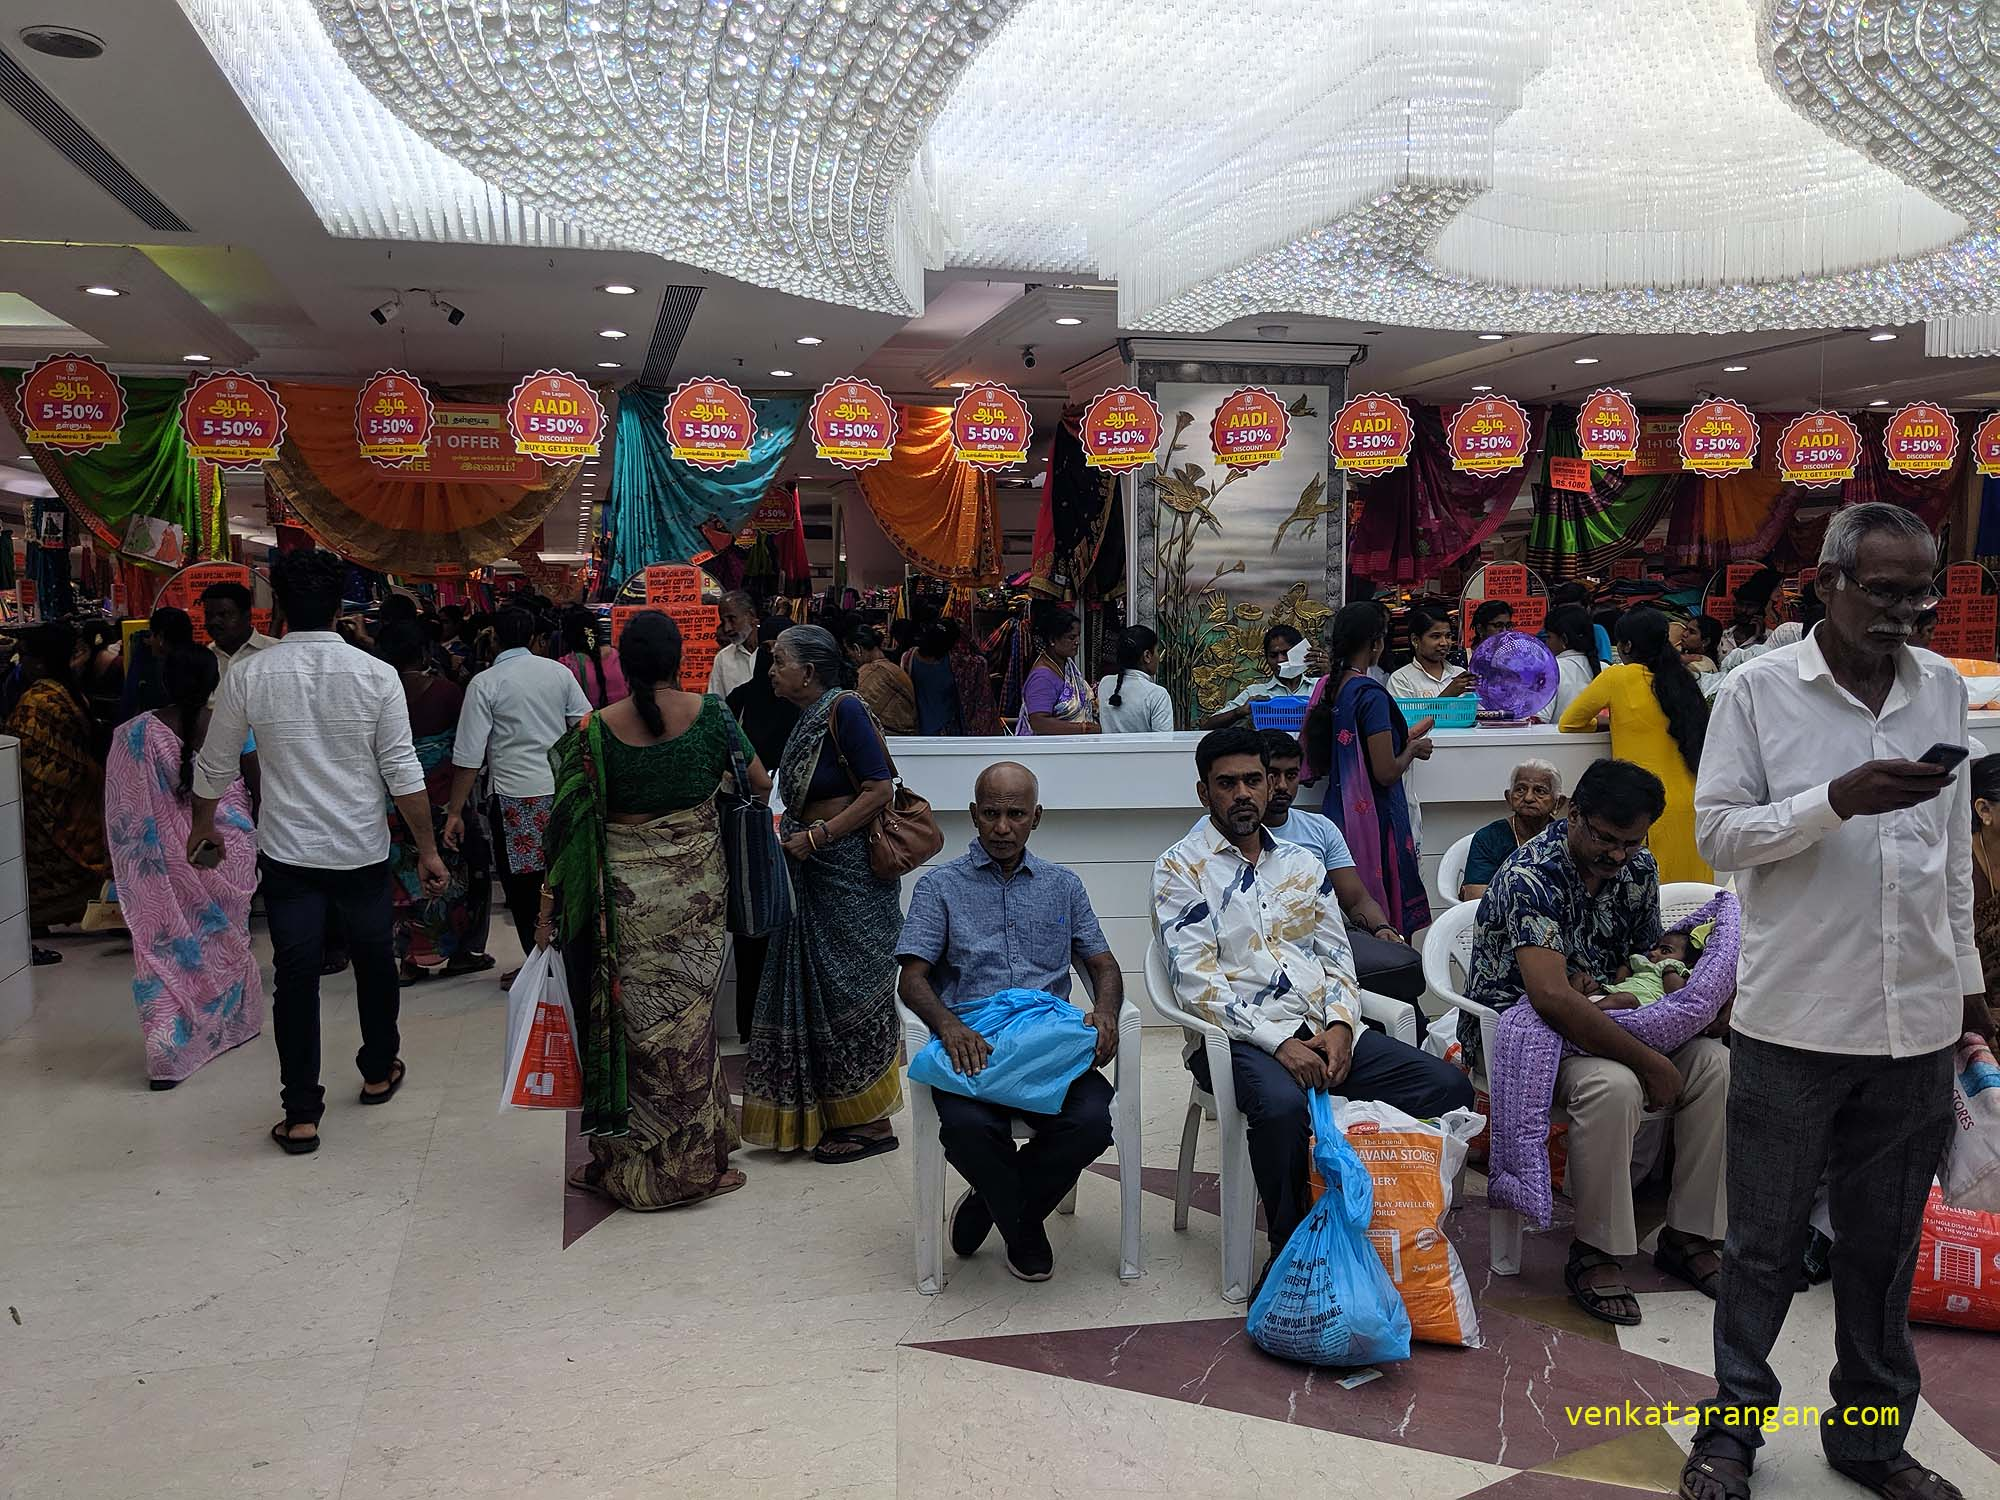 View of shoppers inside Saravana Stores - The Legend